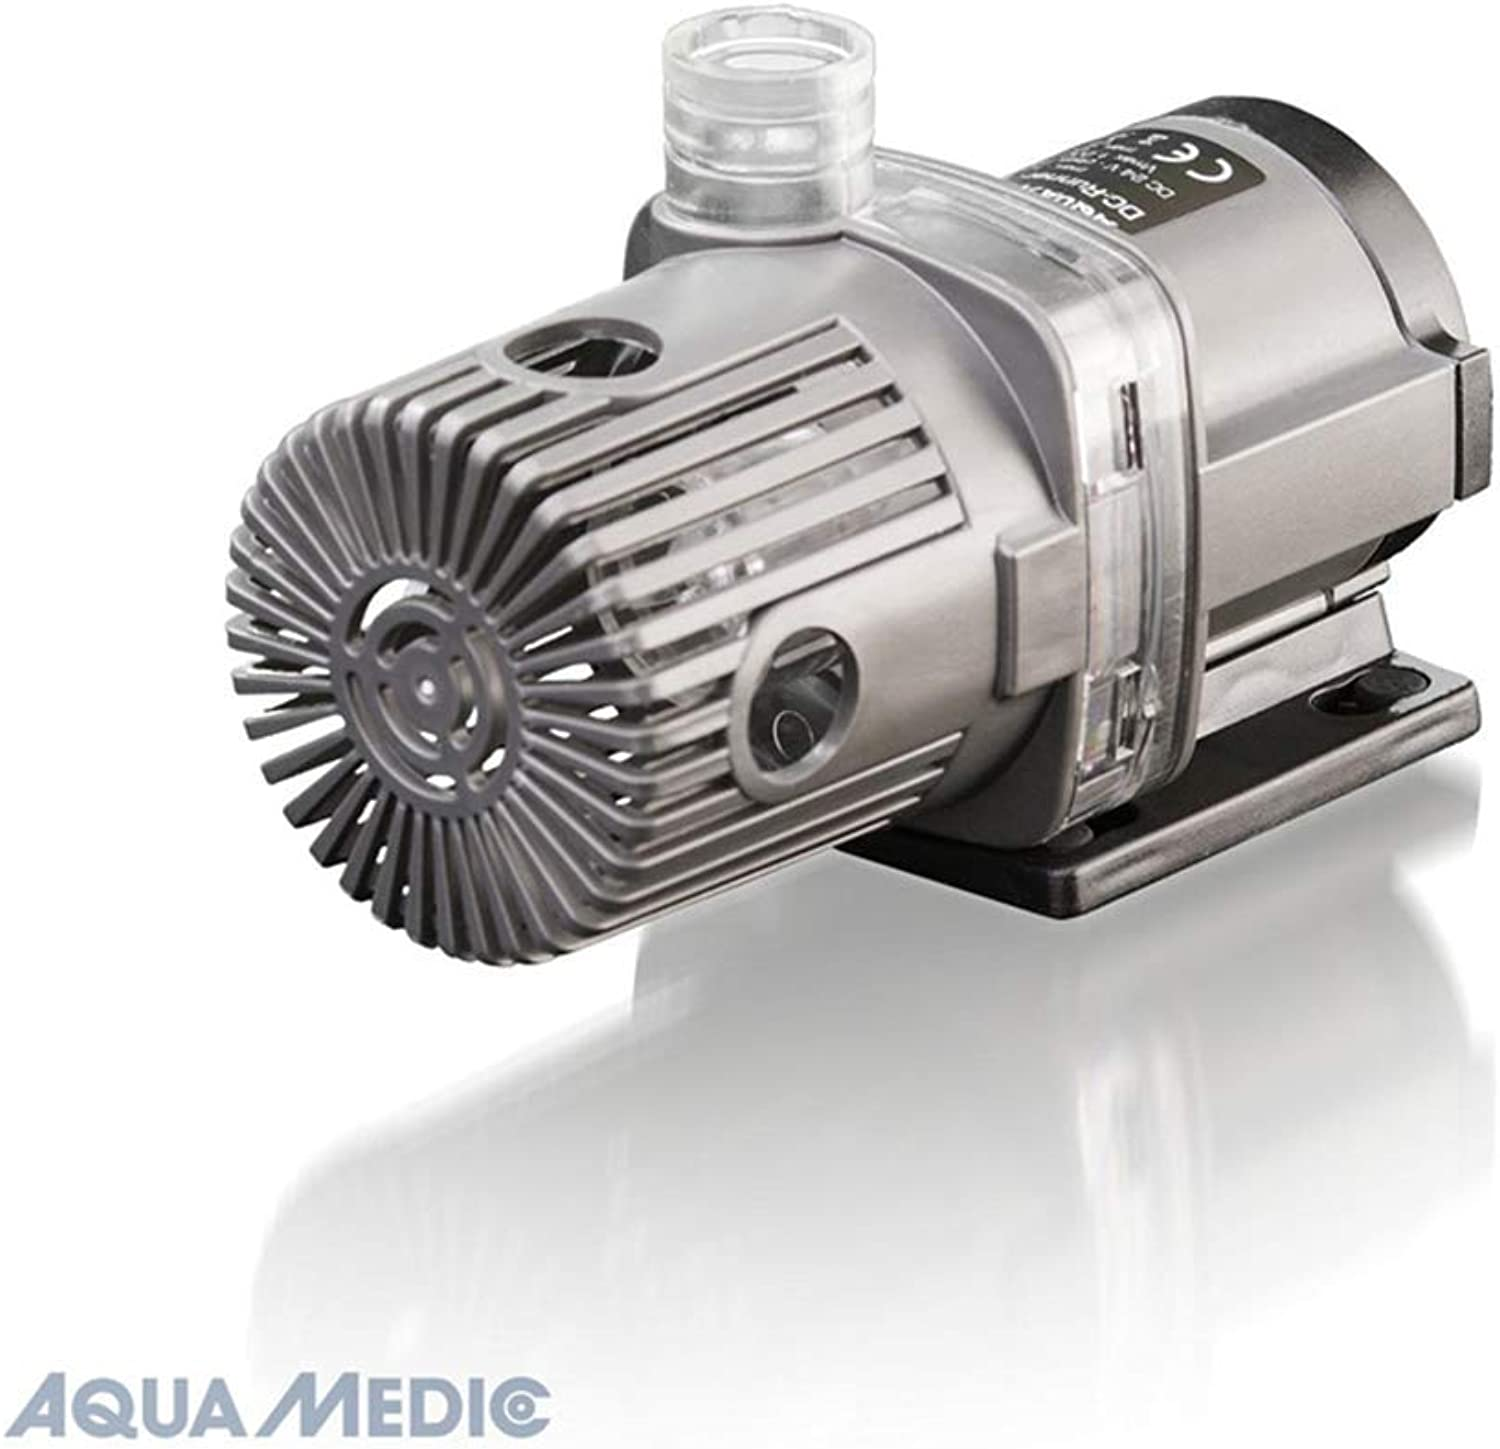 Aqua Medic DC Runner 1.2 Aquarium Return Pump